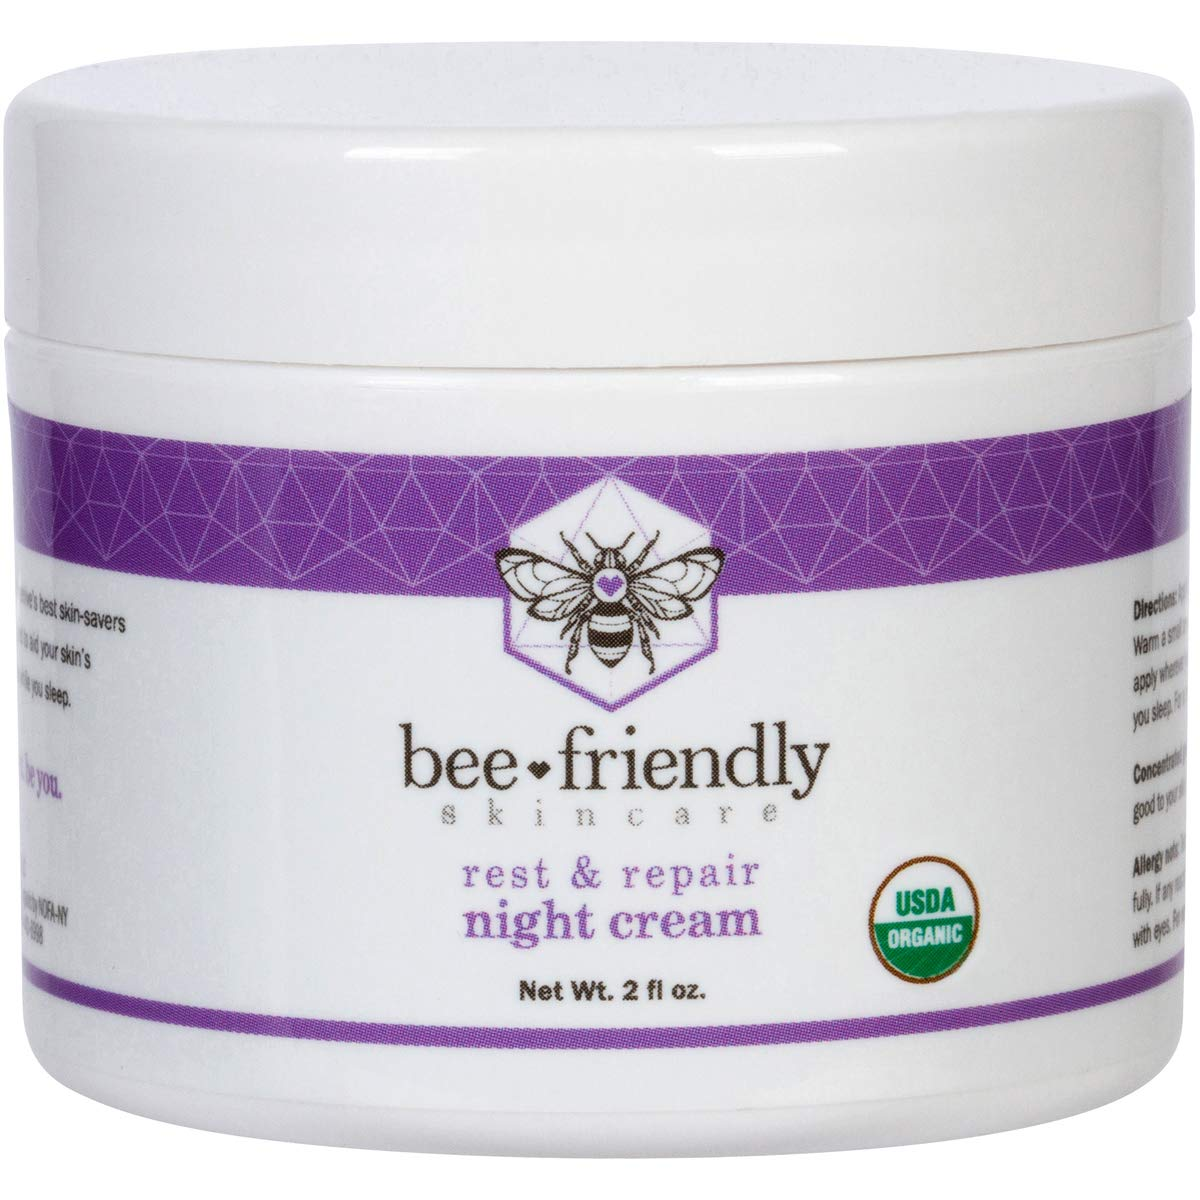 Best Night Cream Natural USDA Certified Organic Night Cream By BeeFriendly